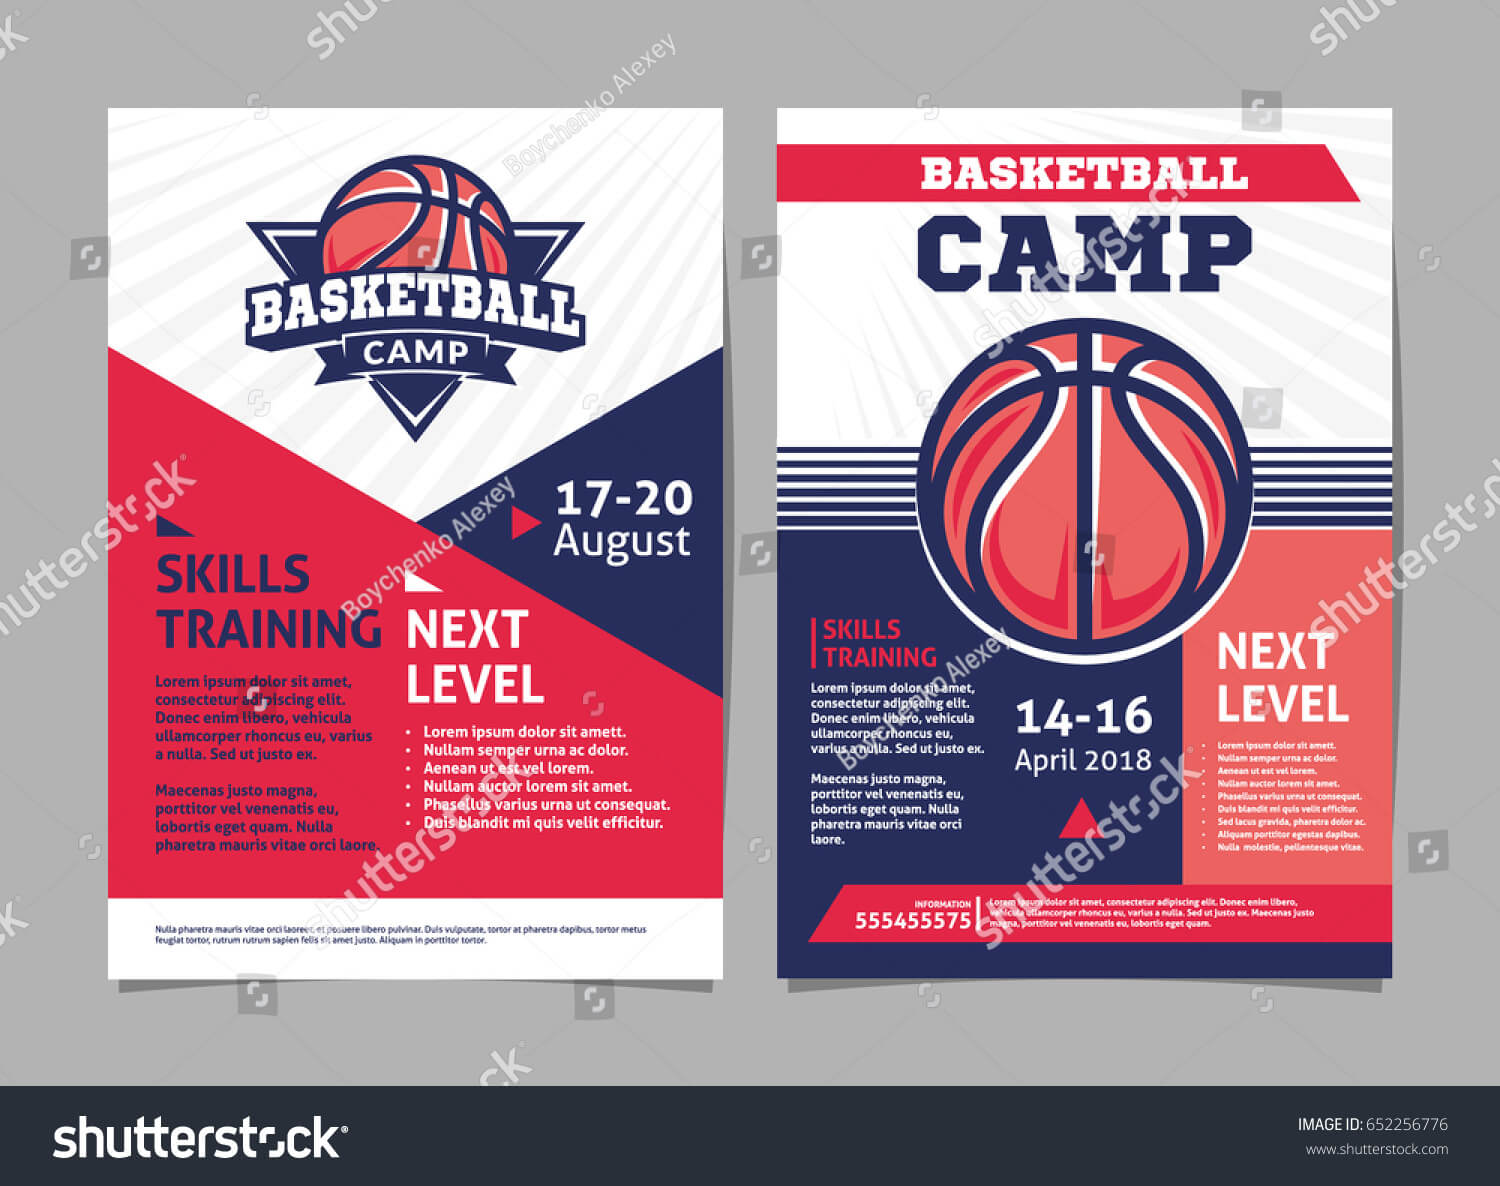 Basketball Camp Posters Flyer Basketball Ball In Basketball Camp Brochure Template